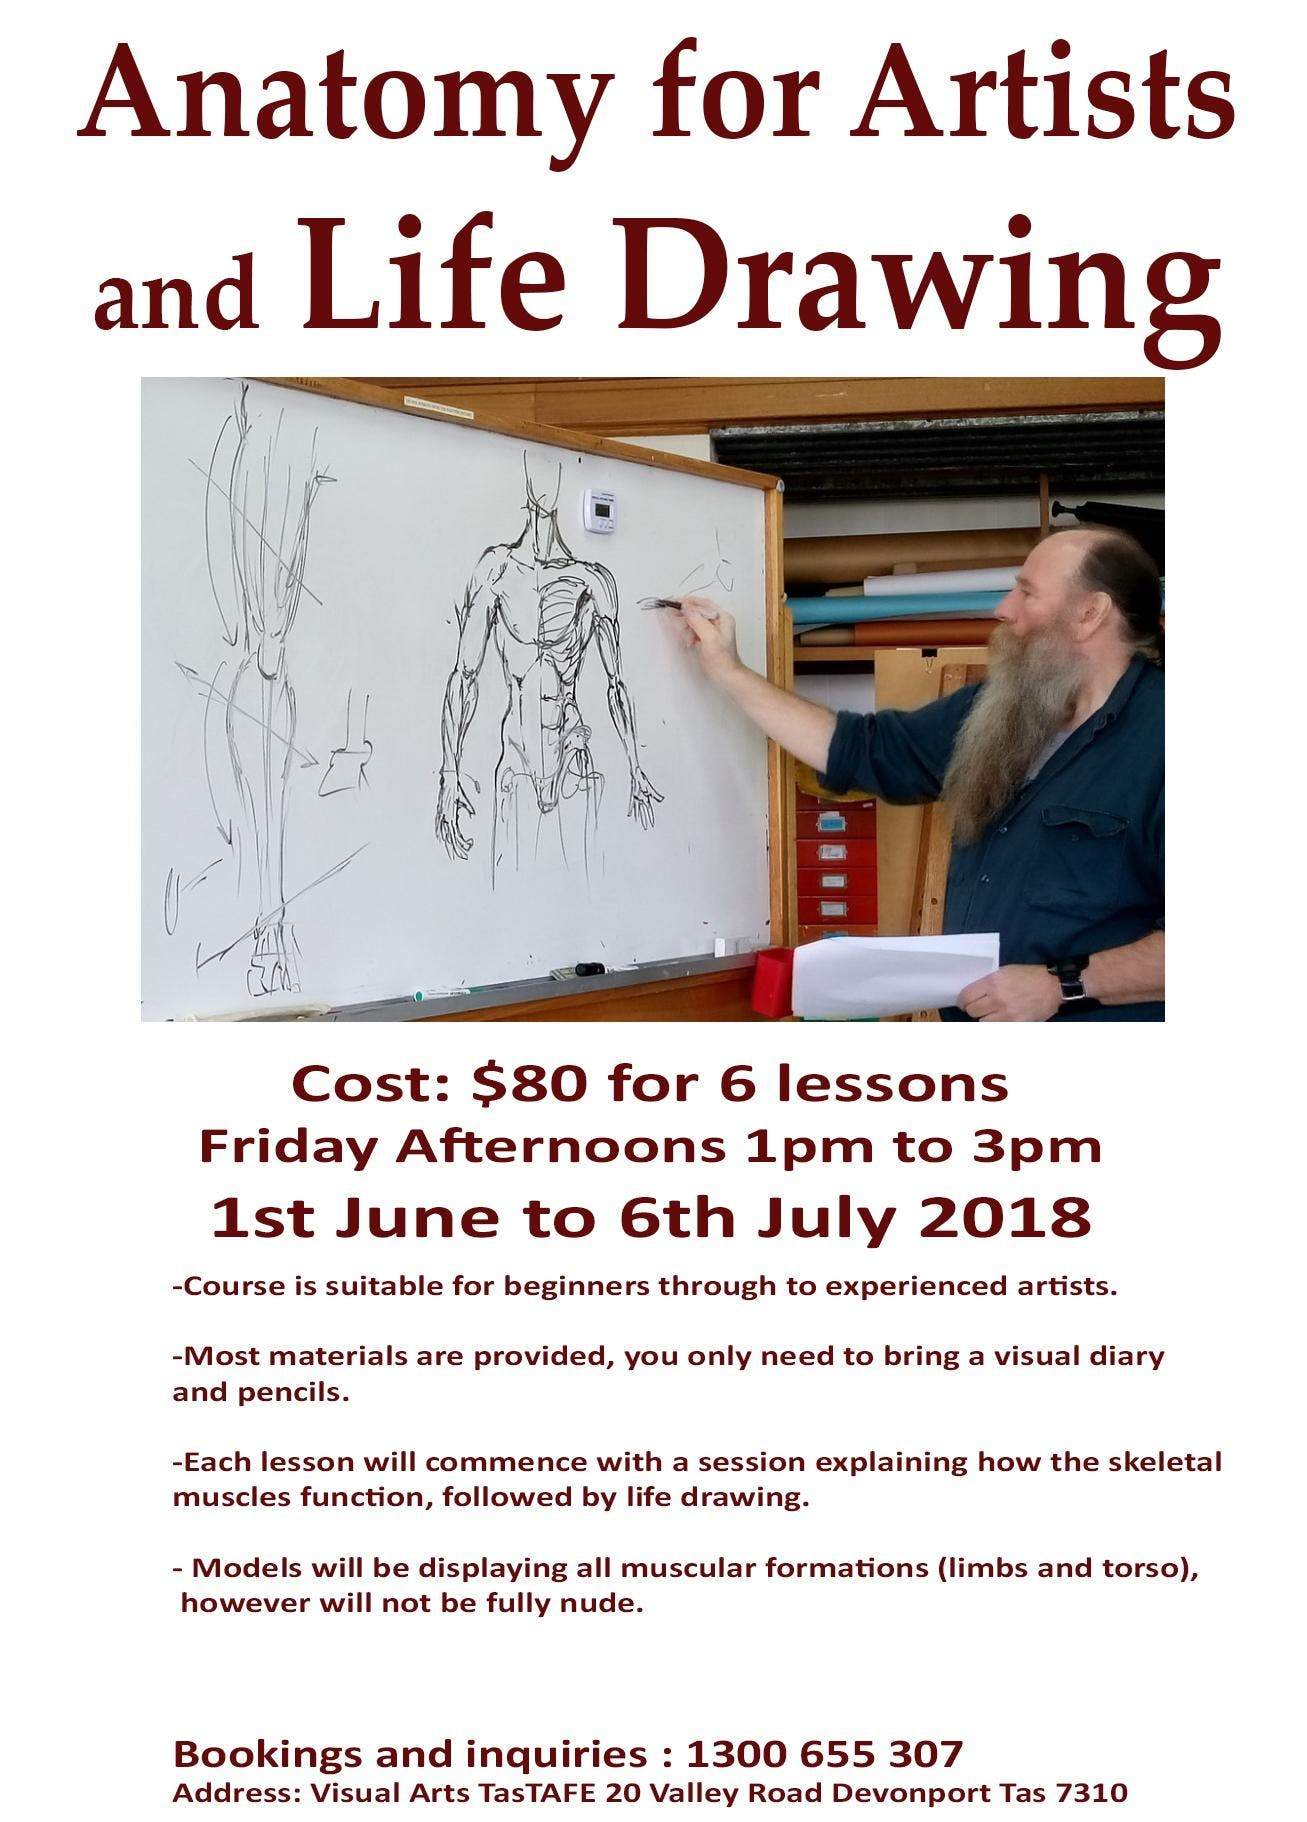 Anatomy For Artists And Life Drawing 1 Jun 2018